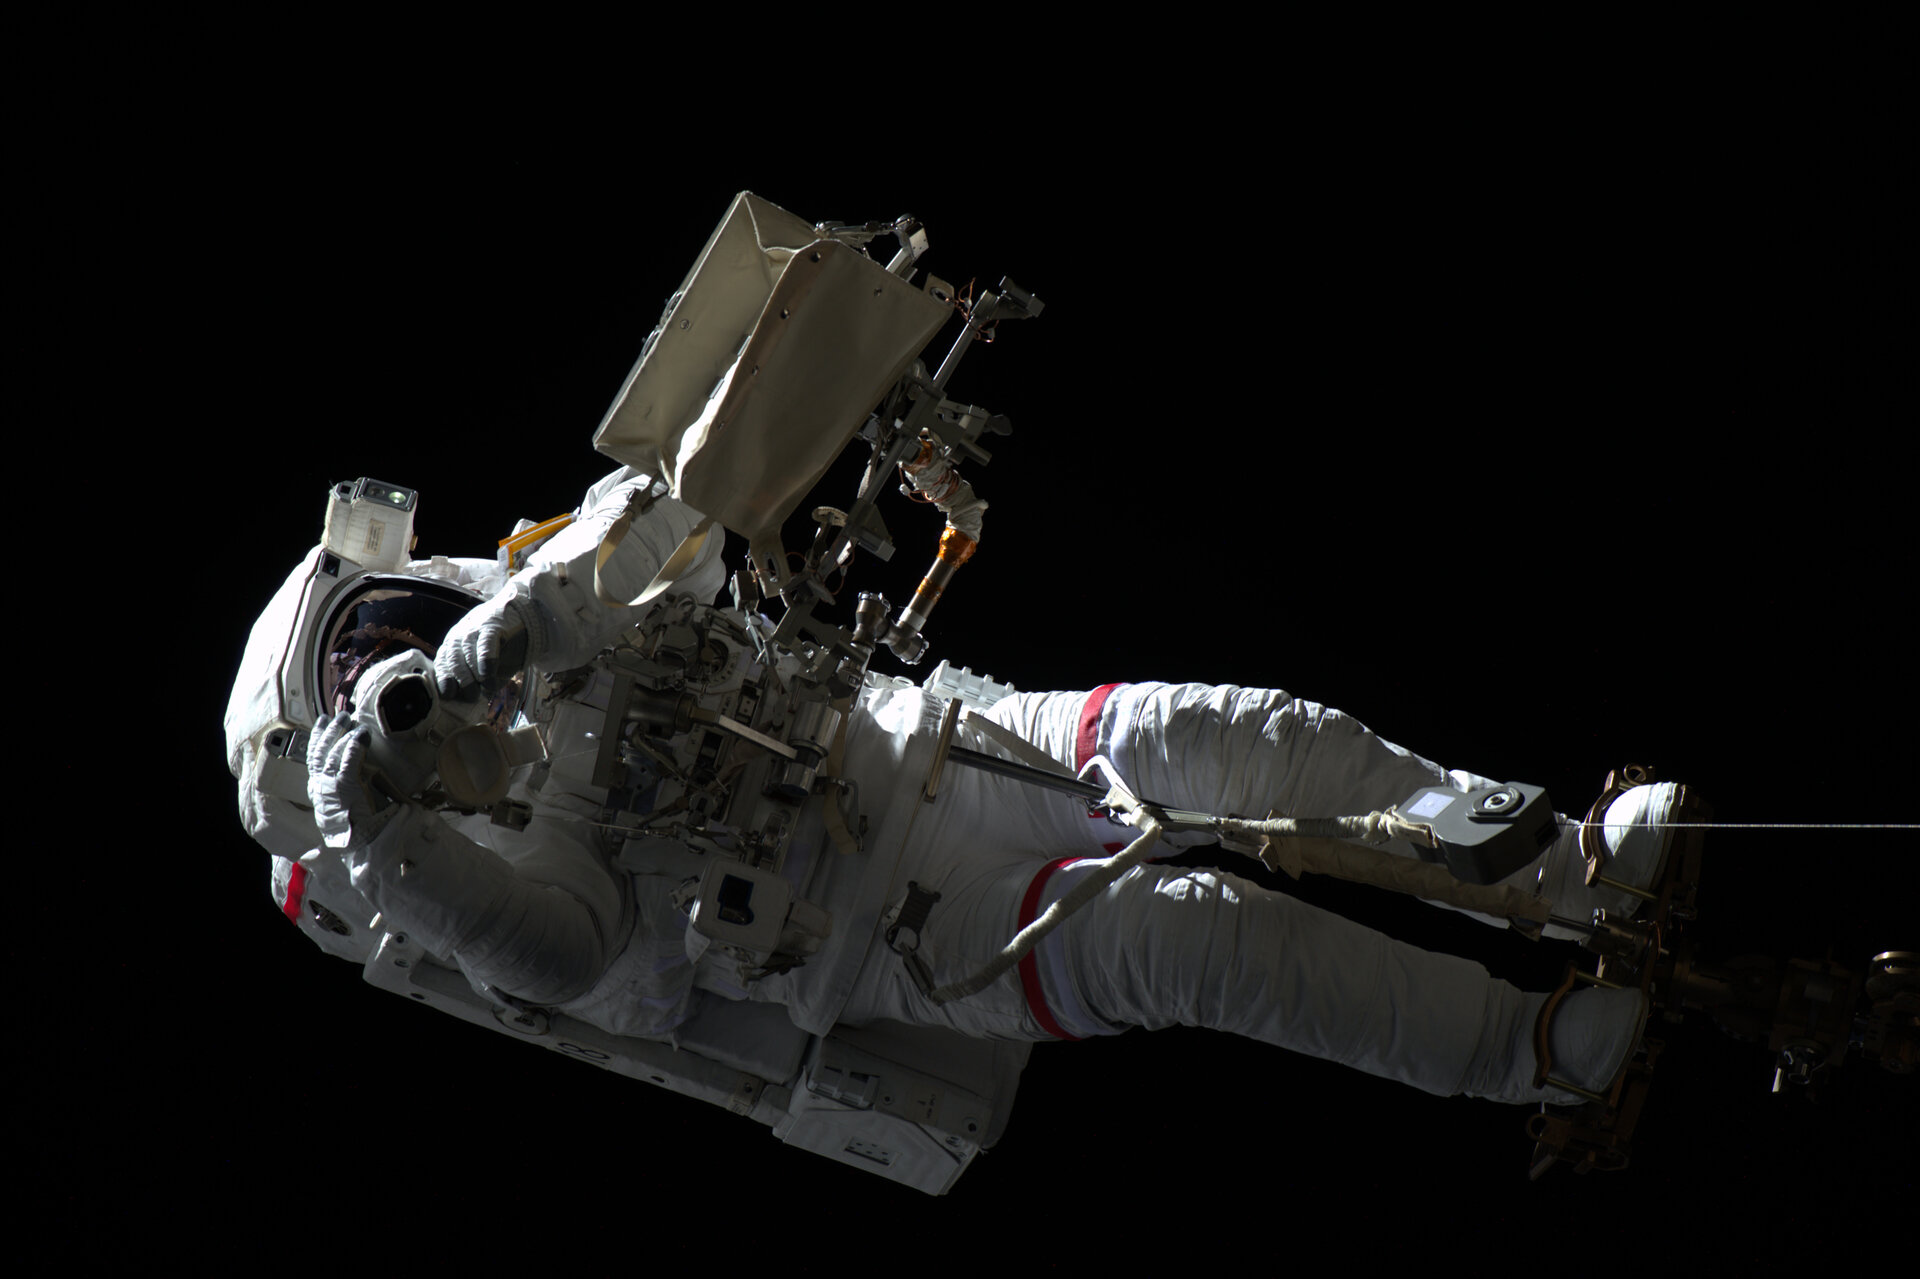 Luca photographed by Oleg Skripochka from inside the International Space Station